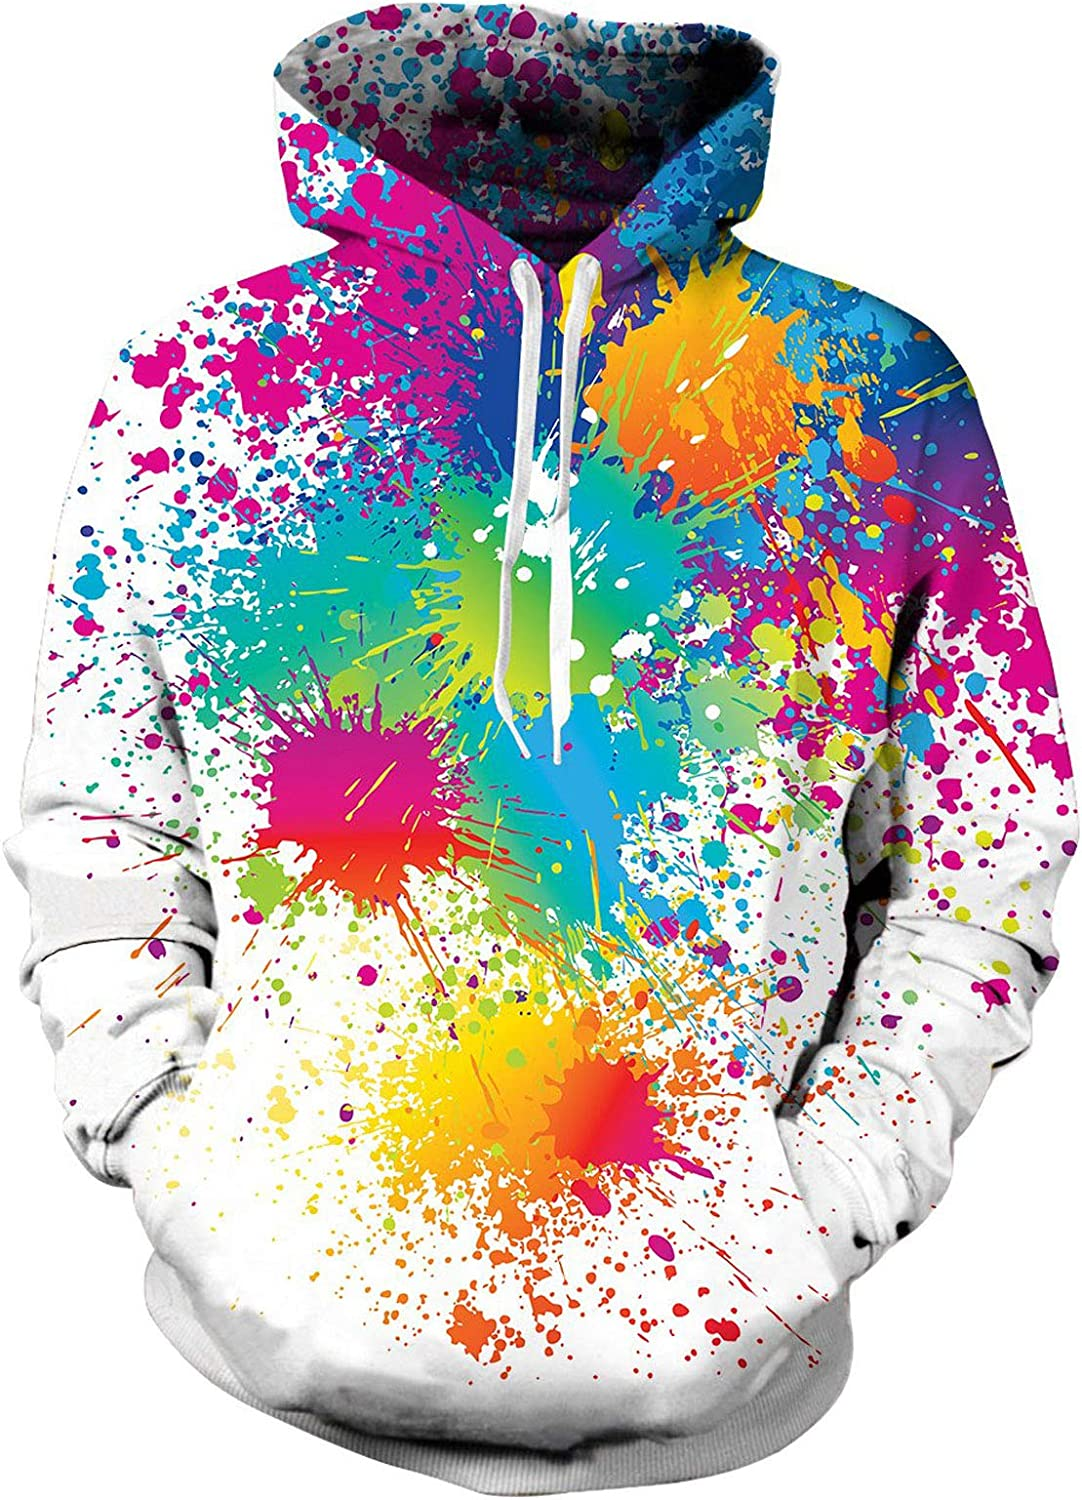 RAISEVERN Unisex Men's Novelty Hoodies Challenge the lowest price of Japan ☆ 3D F Graphics Hoody Print Ranking integrated 1st place